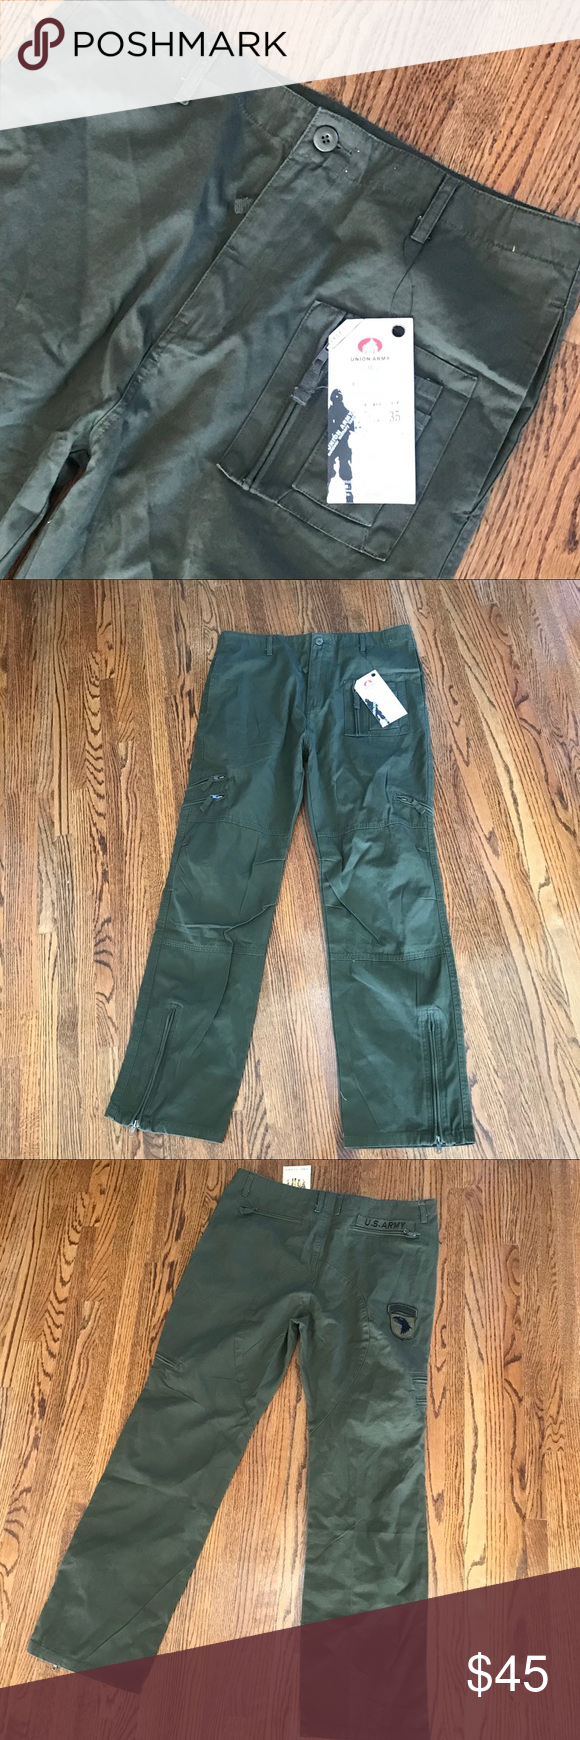 783fc45635d27 Army fatigue pants green Army pants. Size 35. Zips at ankle. Measurements  to come. 100% authentic. New with tags. Pants Cargo